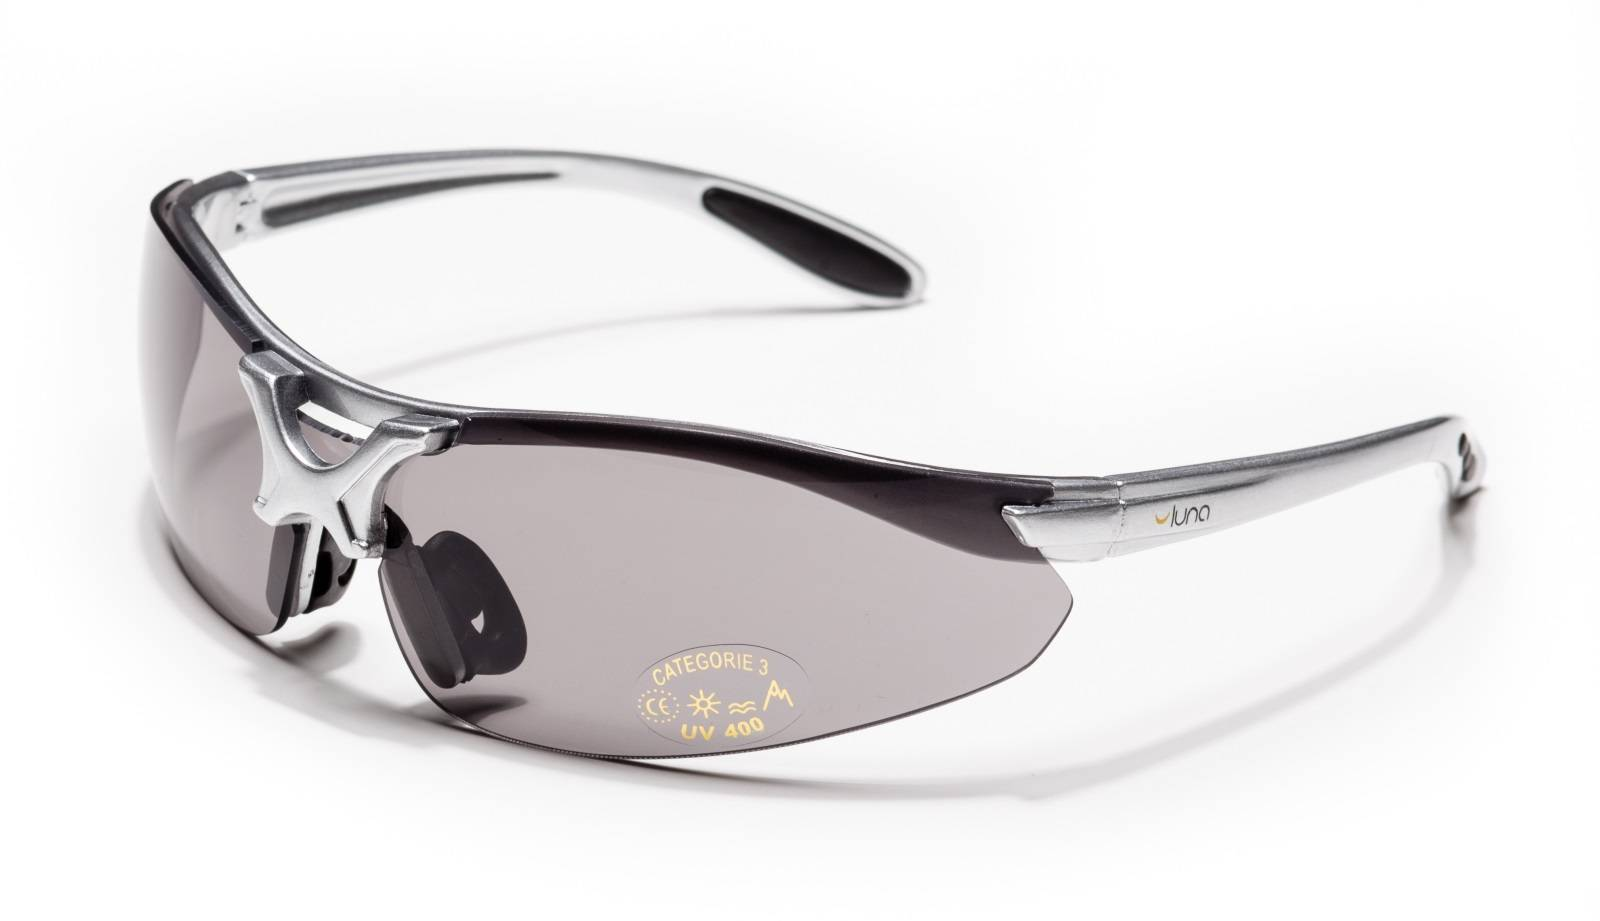 Luna Glasses Luna Orbit Running Cycling Sunglasses with Grey/Clear/Transparent Lenses (Grey Frame) Hard Protective Case